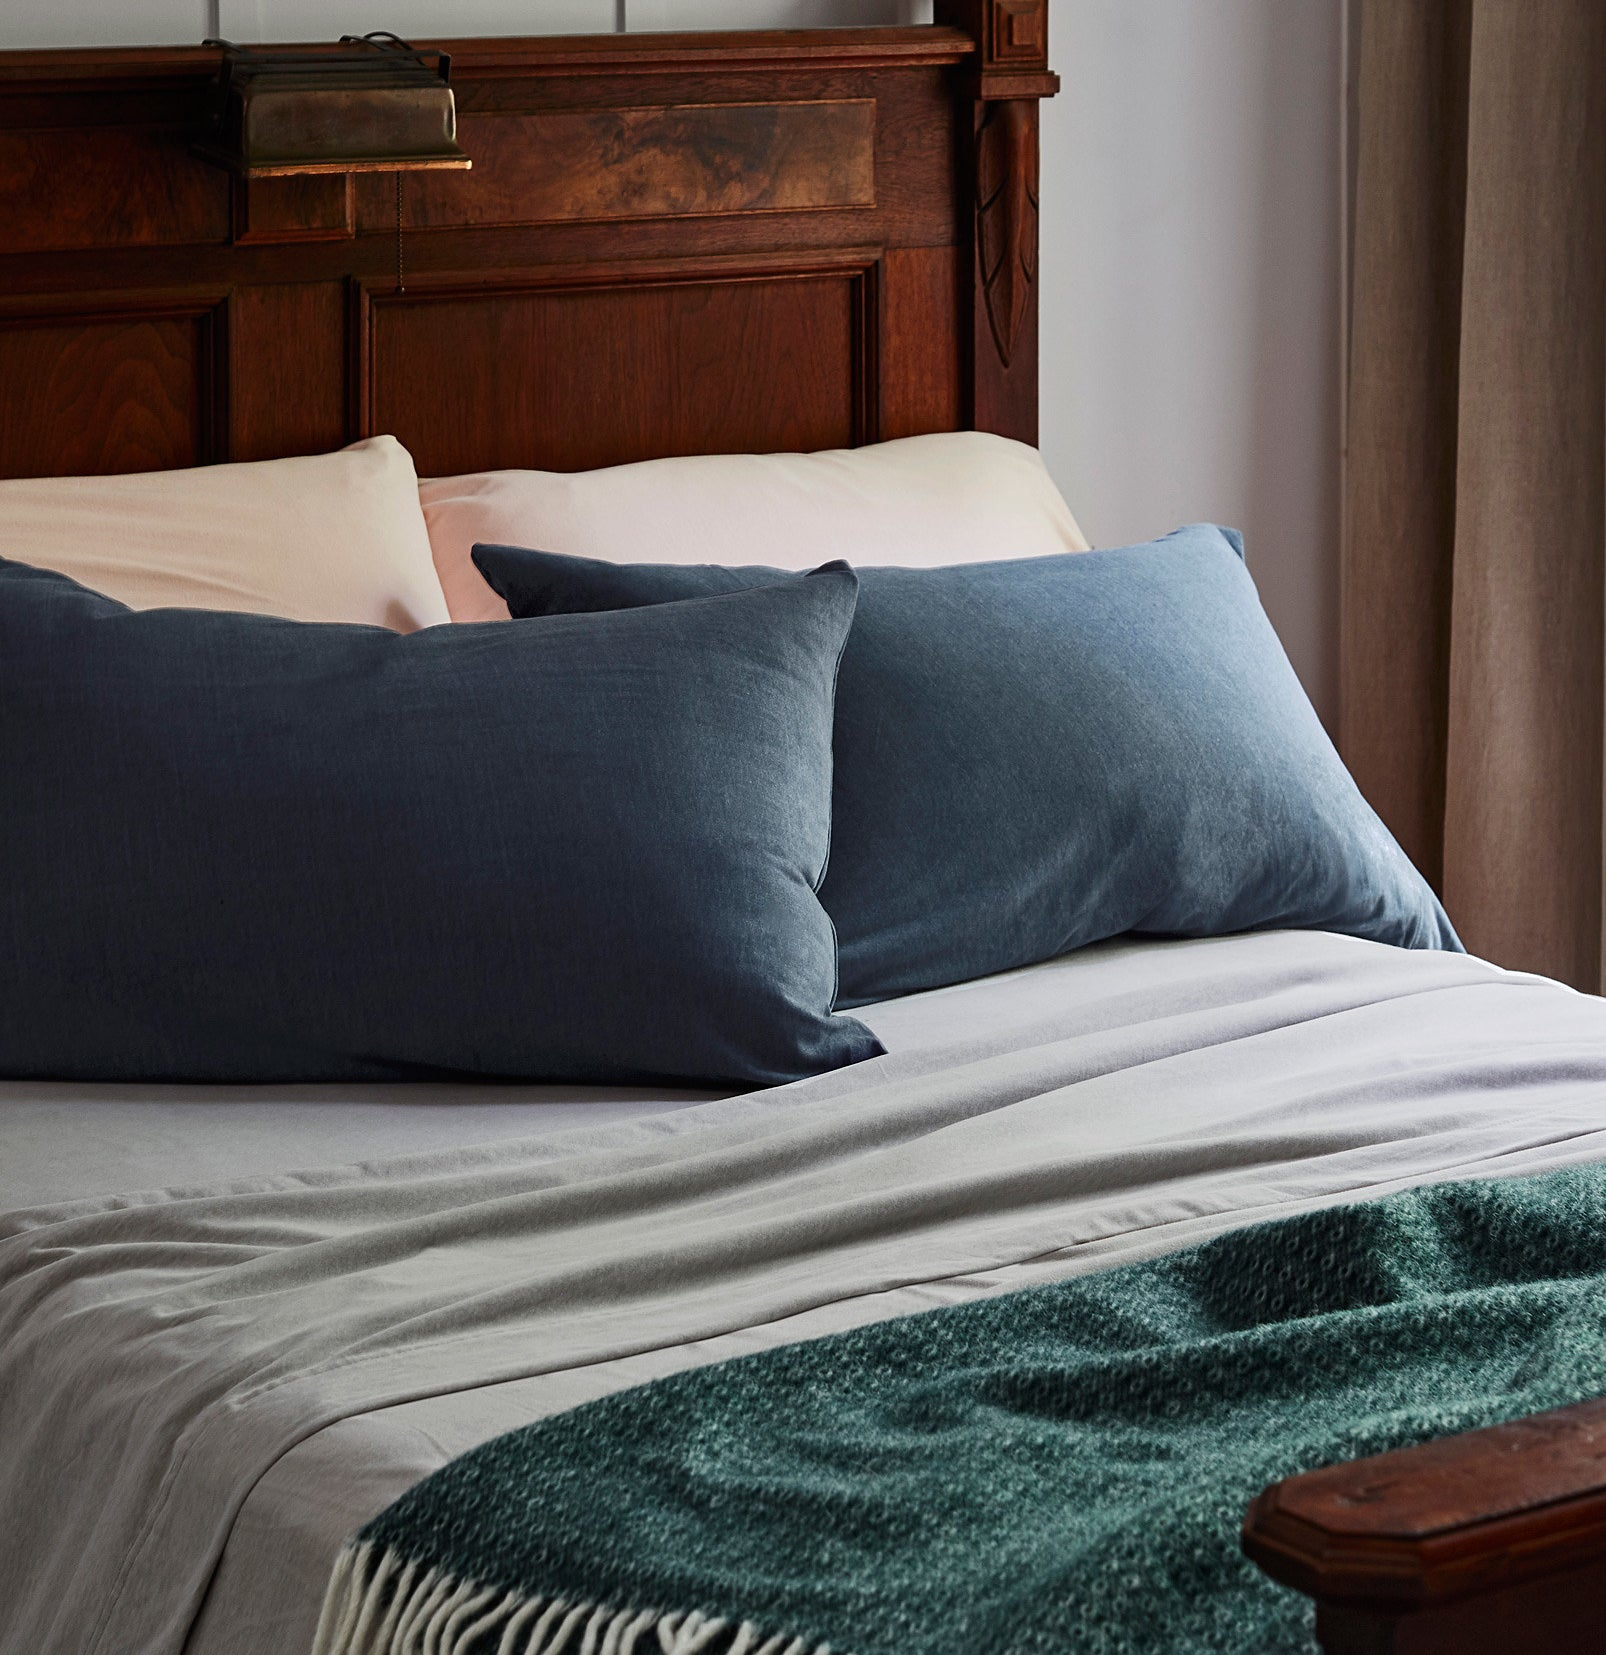 A cozy bed with pillows, pillowcases, sheets, and a throw blanket